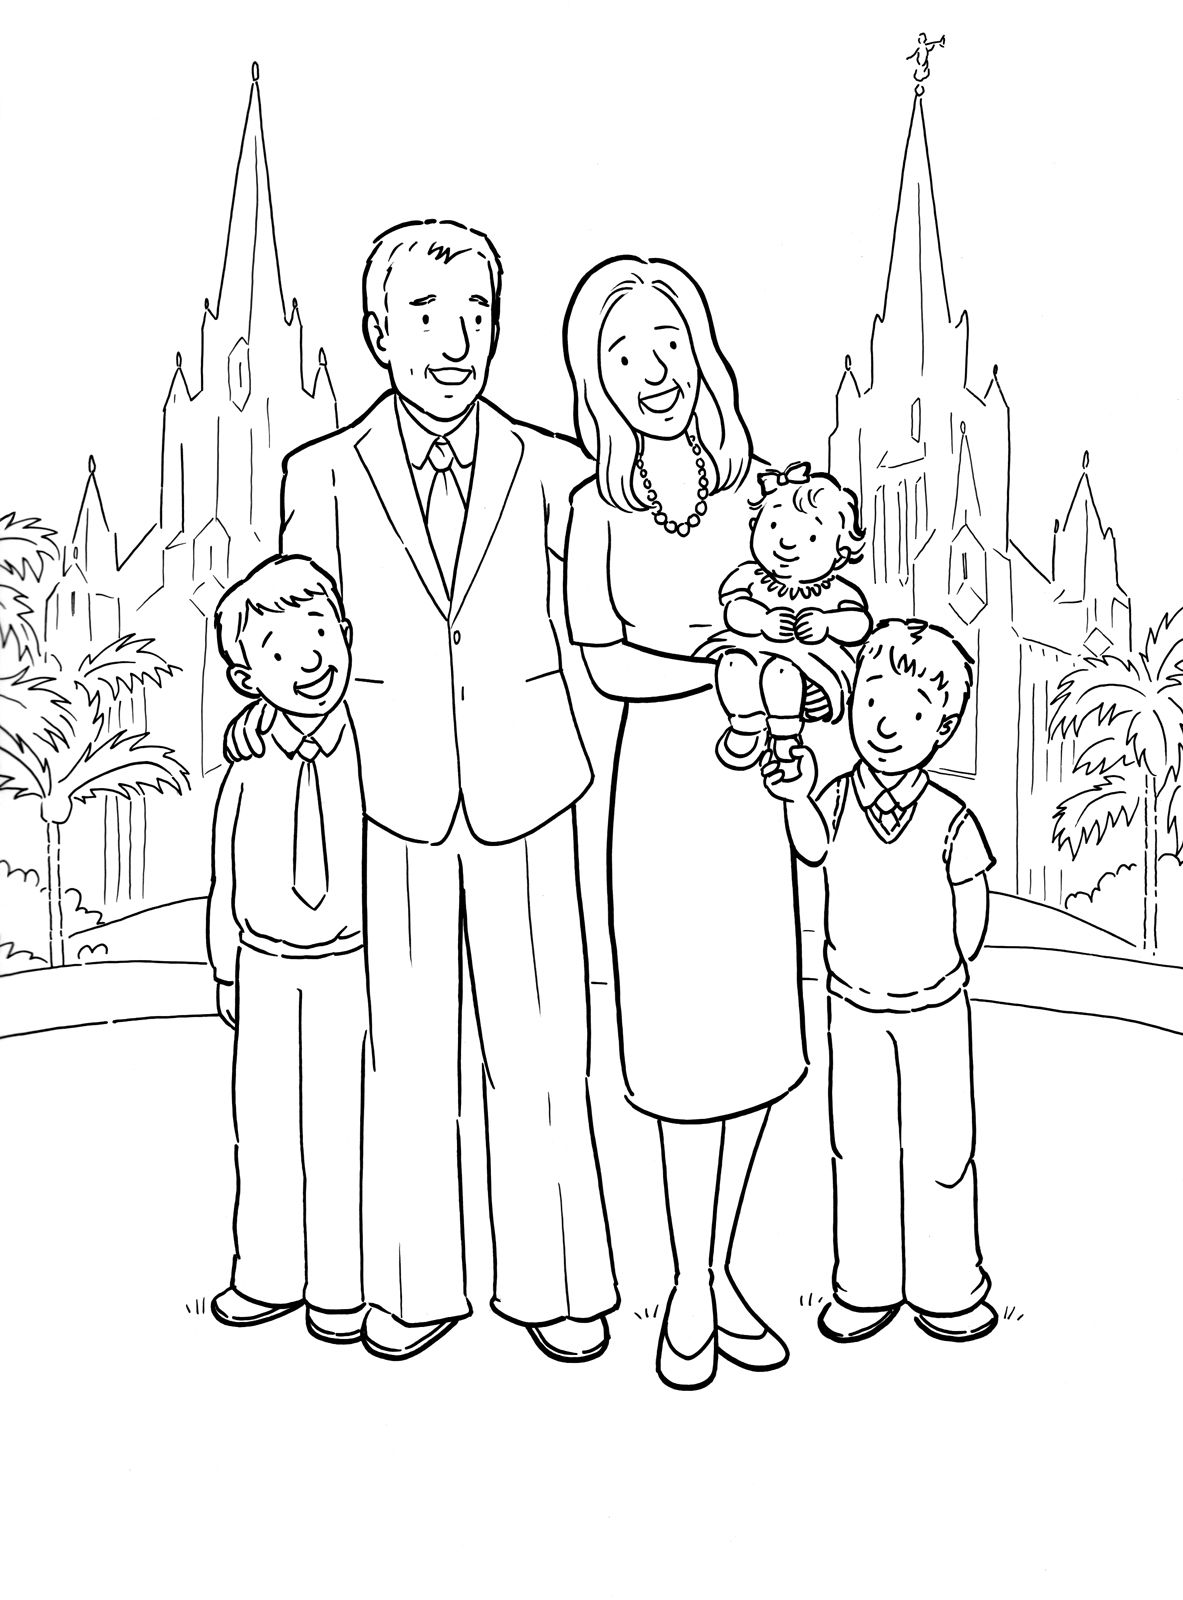 coloring pages of families A happy family at the San Diego Temple. A Primary coloring page  coloring pages of families